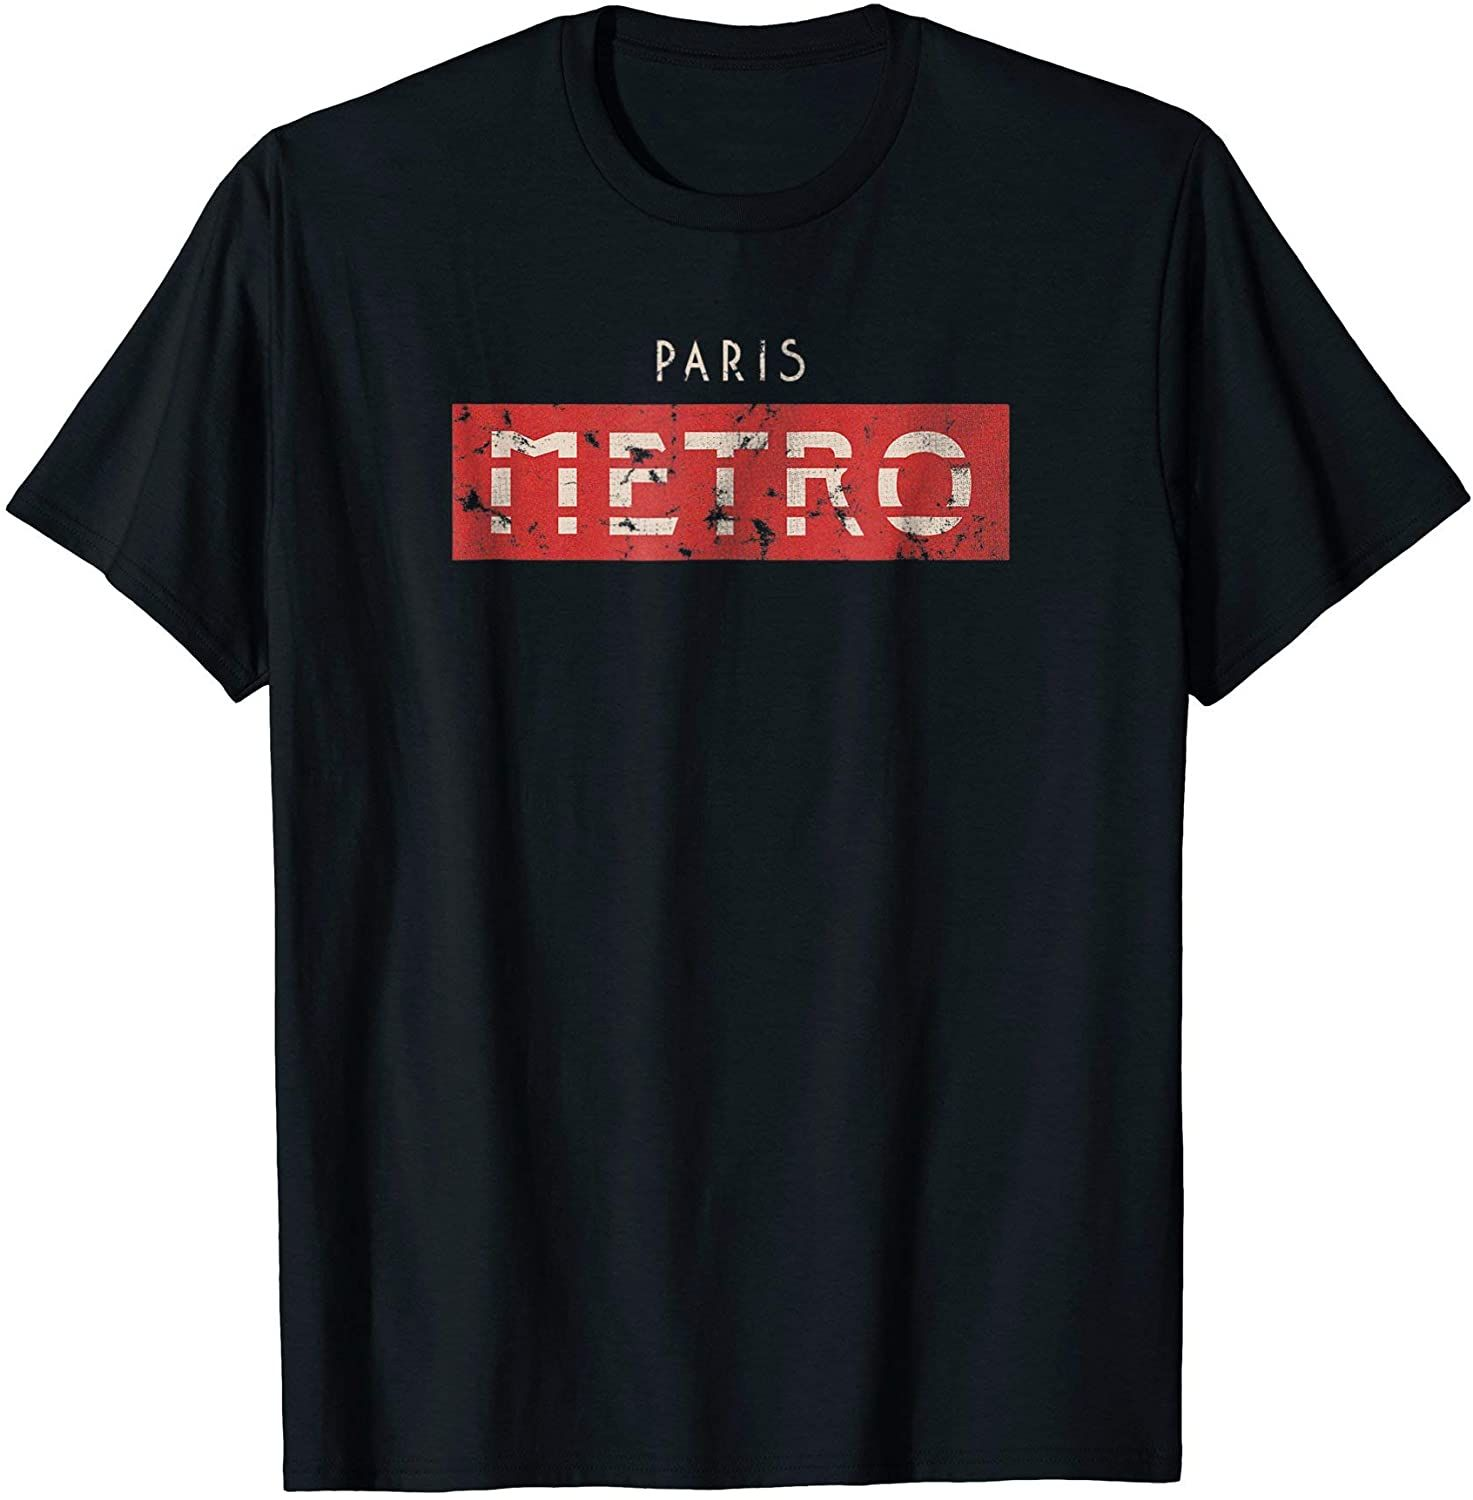 Paris Metro Tshirt for Paris France Travelers in 2020